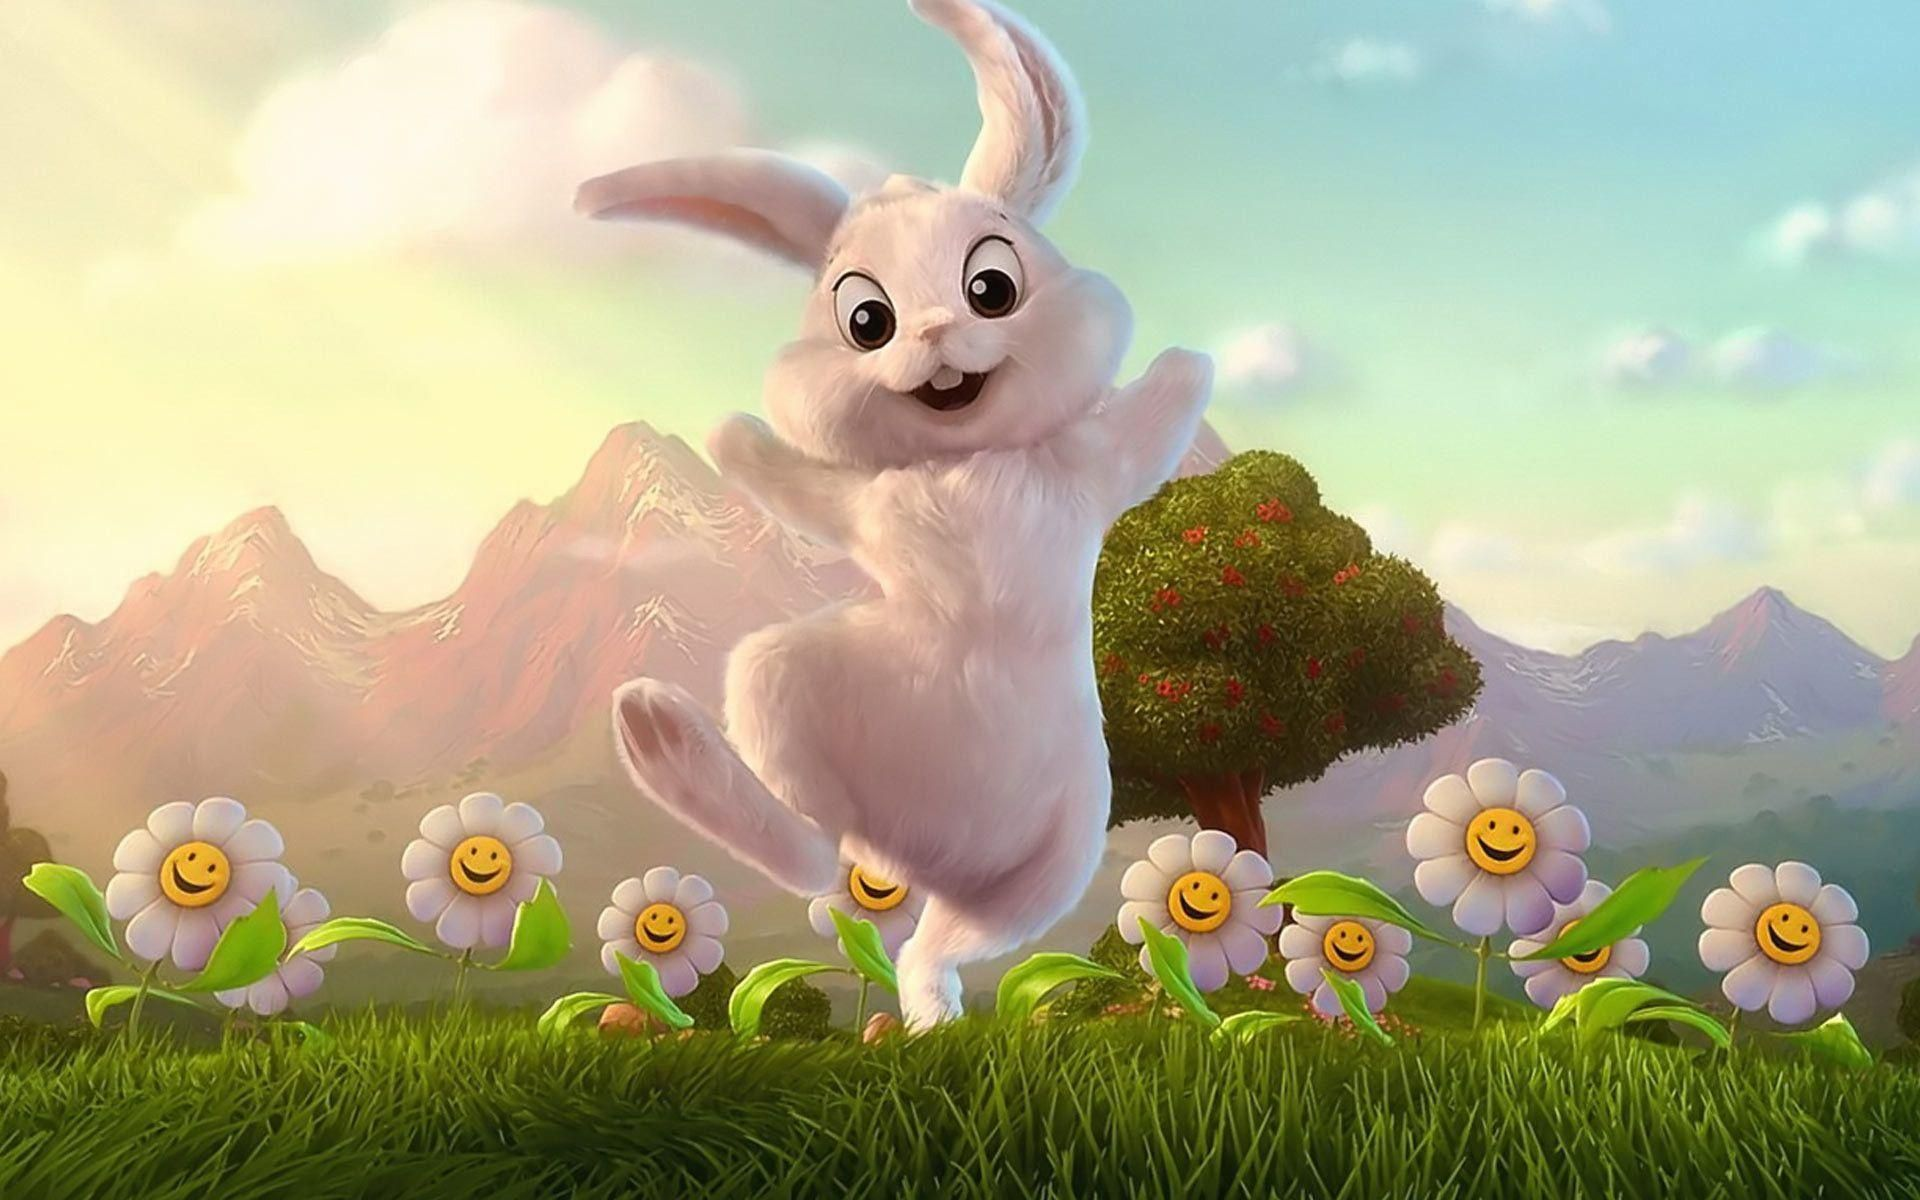 Easter Bunny Wallpaper For Laptop Easter Bunny Images Easter Bunny Pictures Funny Easter Bunny